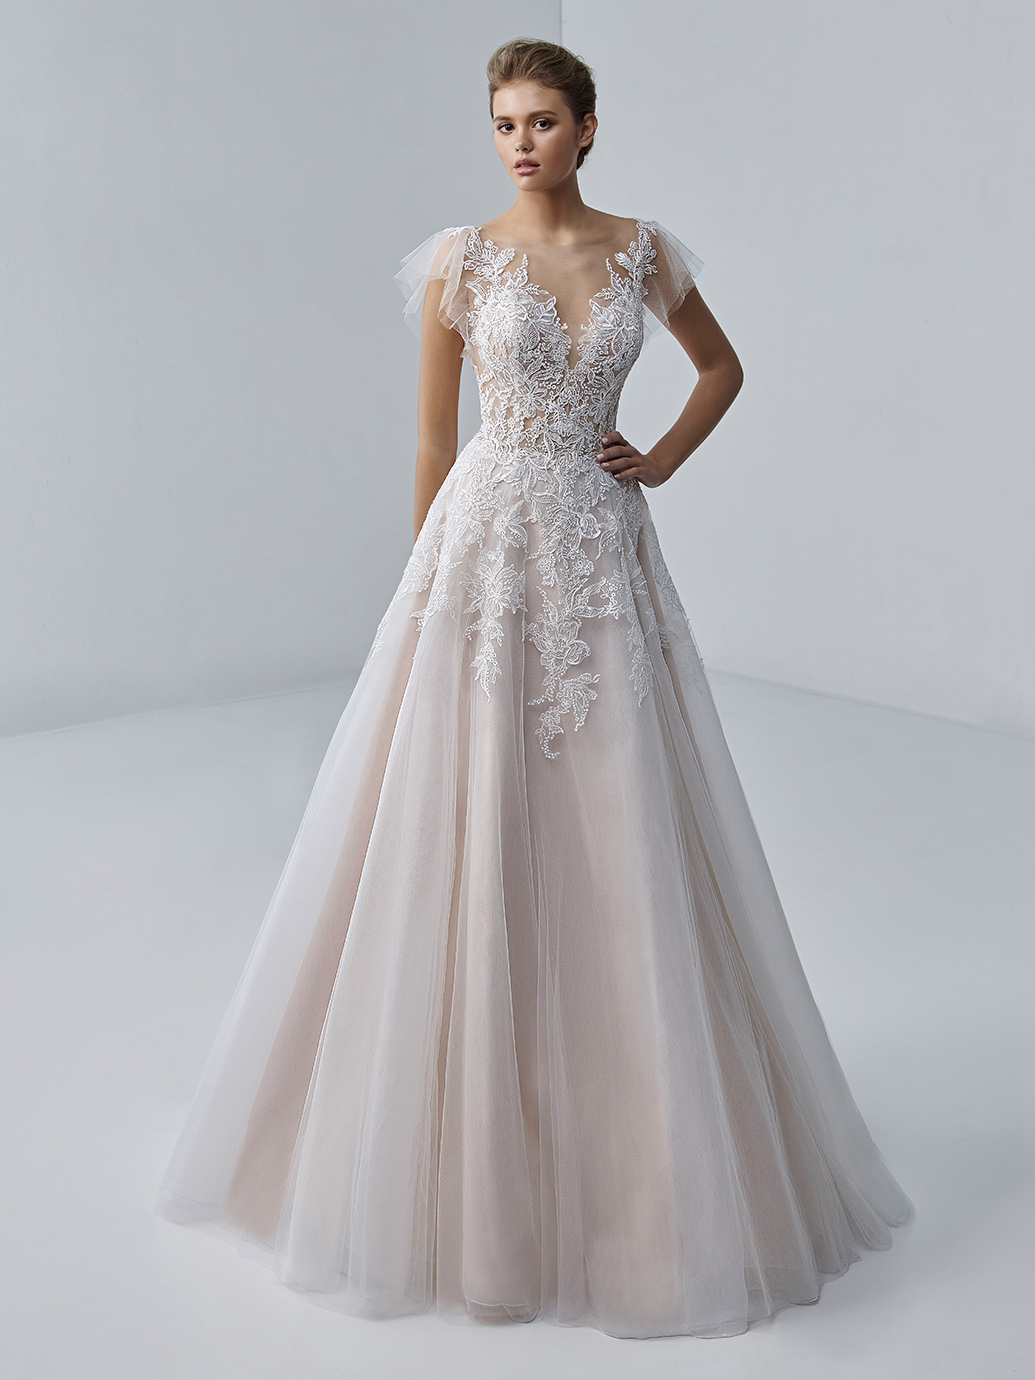 étoile-by-enzoani-2021-Dress-Finderétoile-by-enzoani-2021-Dress-Finder-Aimee